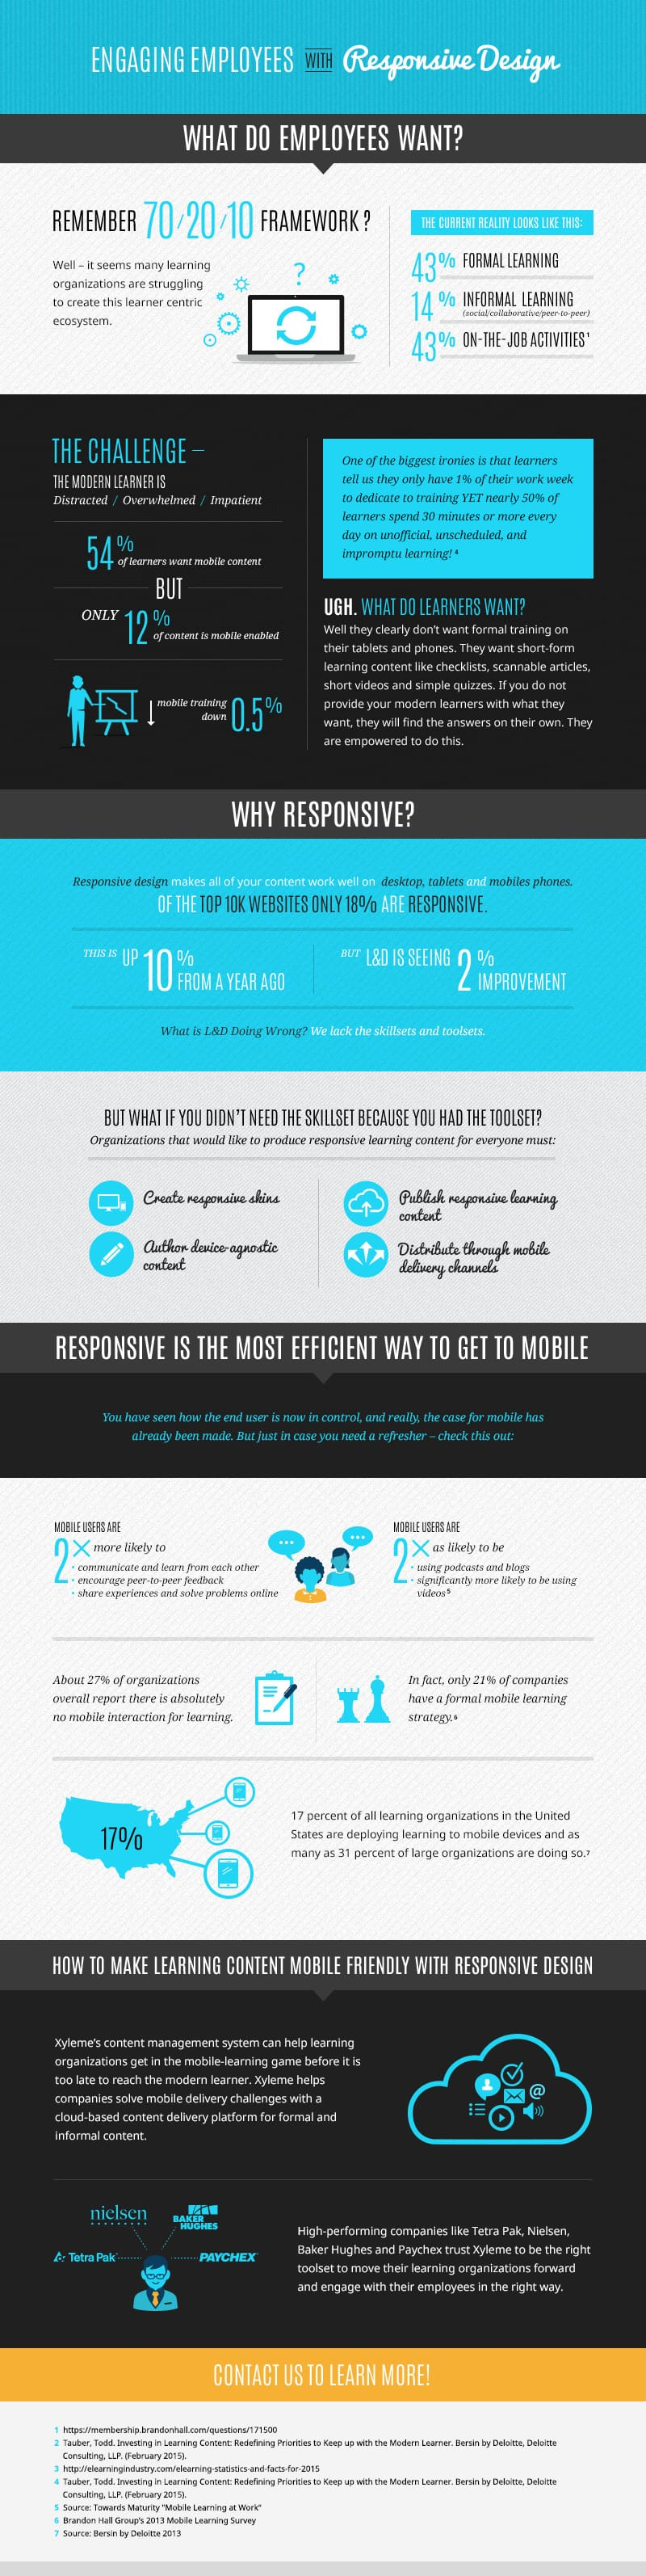 Engaging Employees With Responsive Design - Xyleme